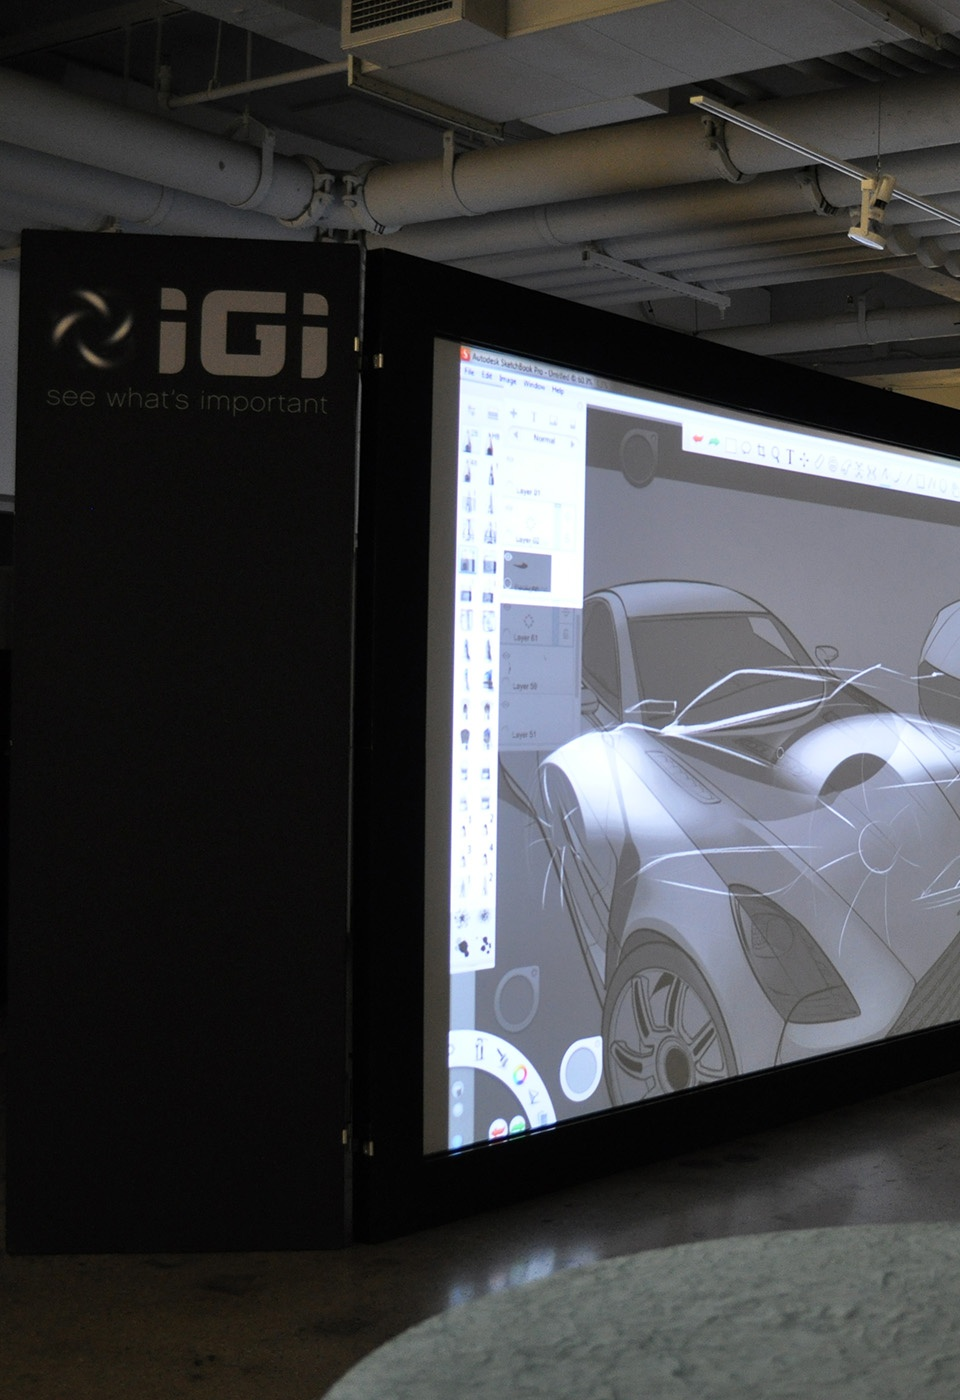 Automotive design on IGI PowerWindow